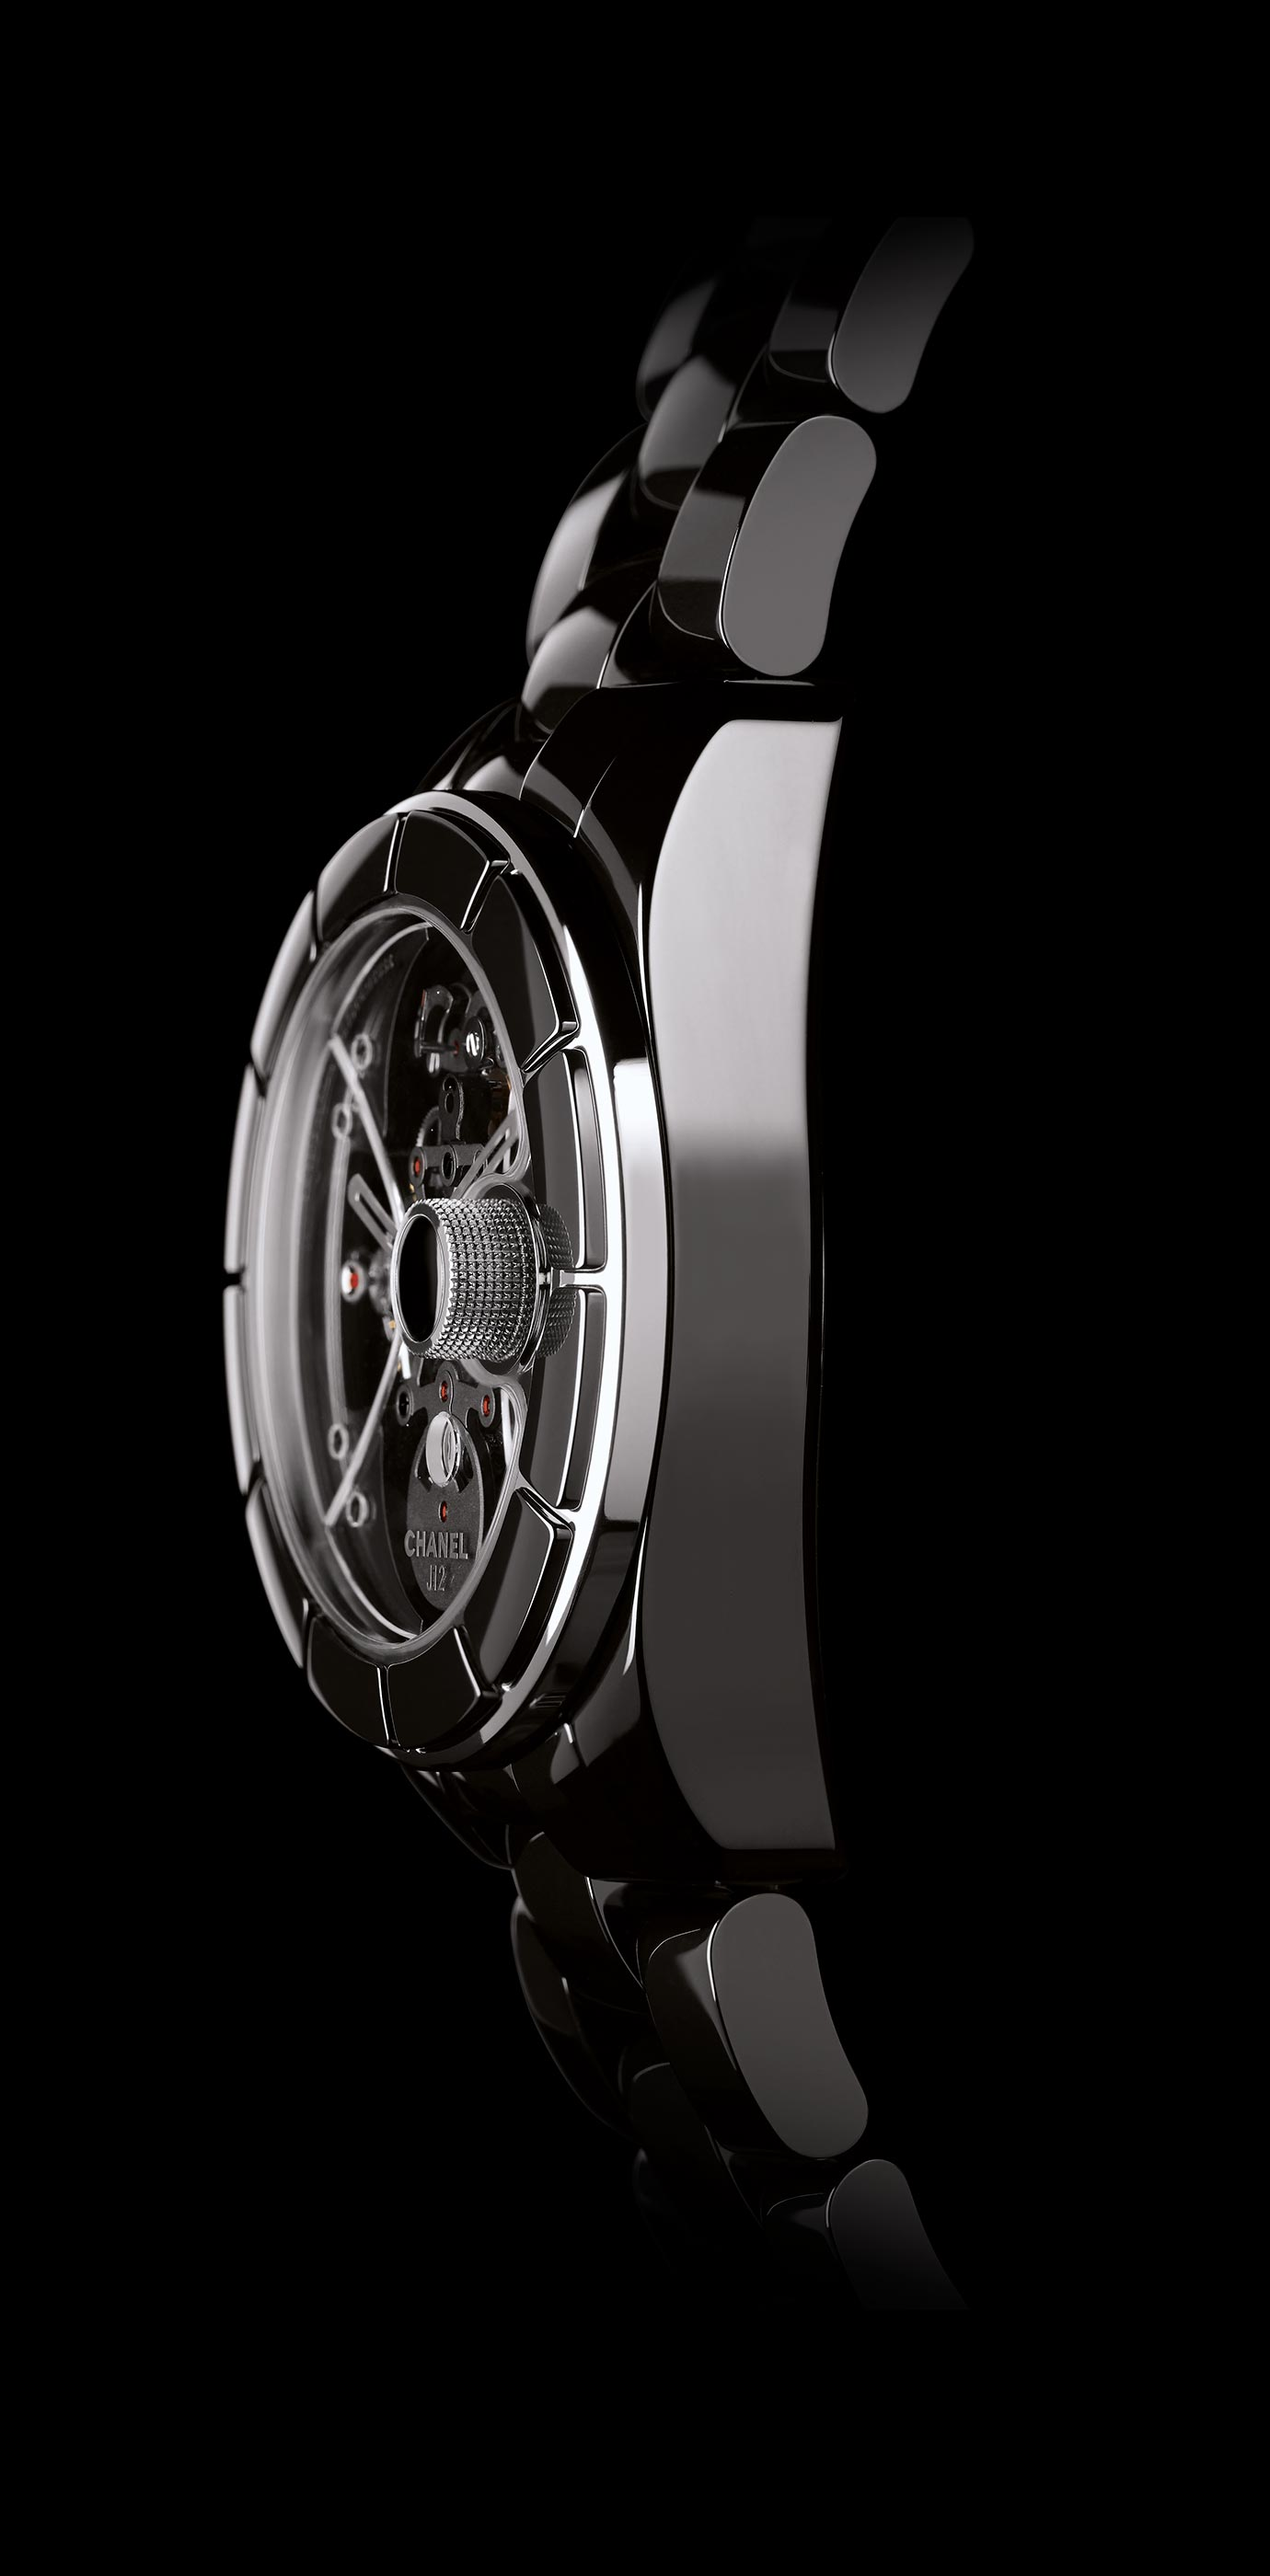 J12 Rétrograde Mystérieuse watch in matte black ceramic, rétrograde mystérieuse caliber and APRP for CHANEL tourbillon, retractable crown. Side view. - Enlarged view